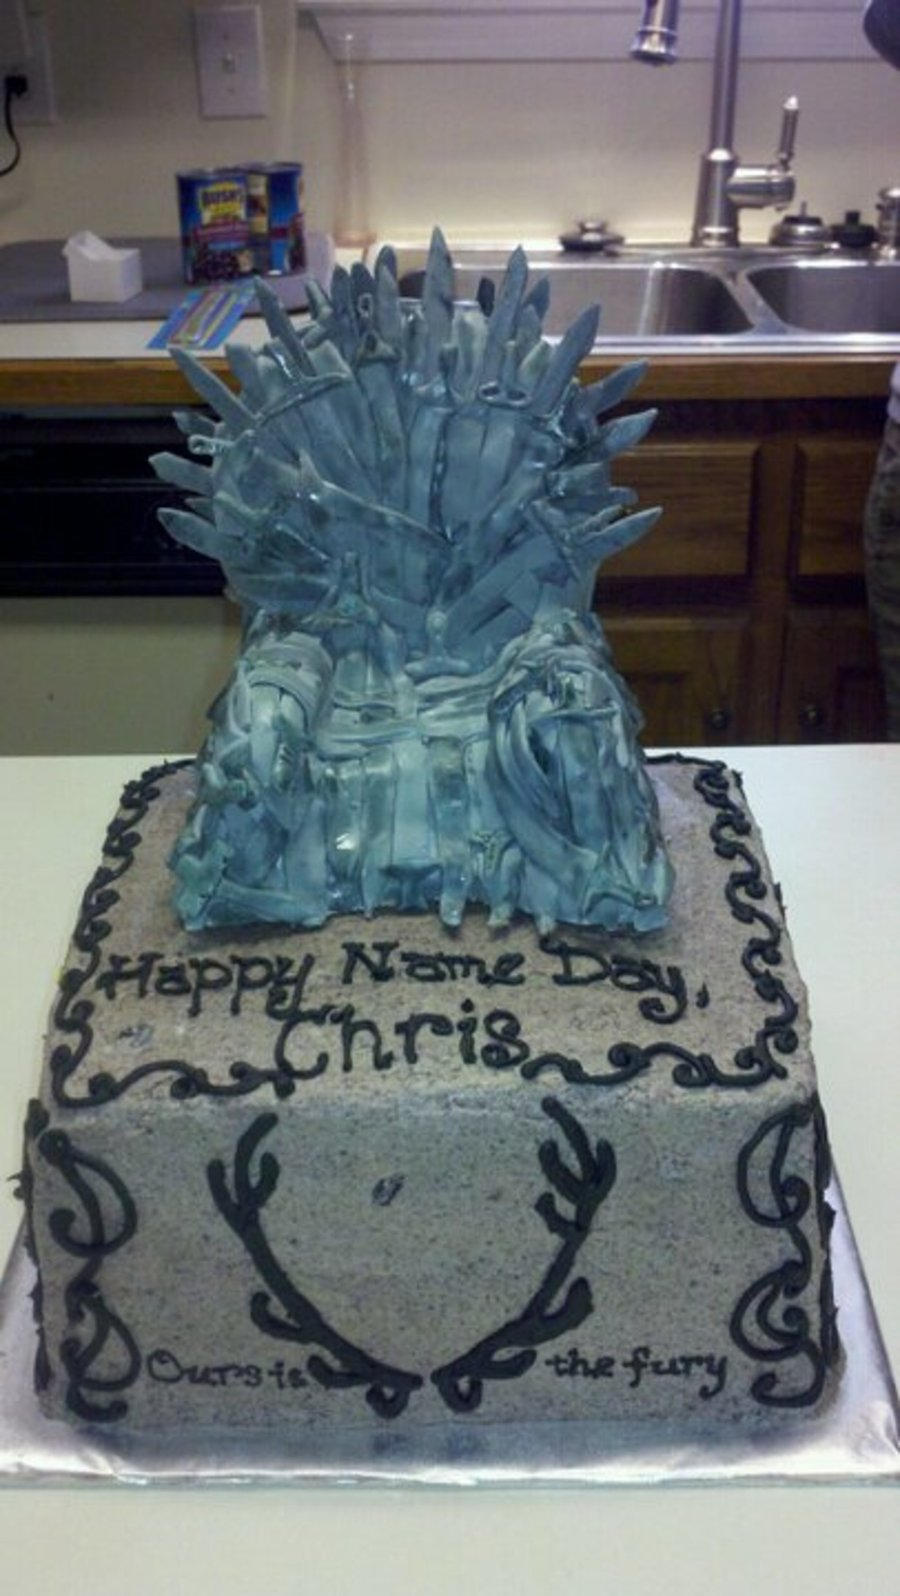 Game of thrones chair cake - Game Of Thrones Throne Cake On Cake Central